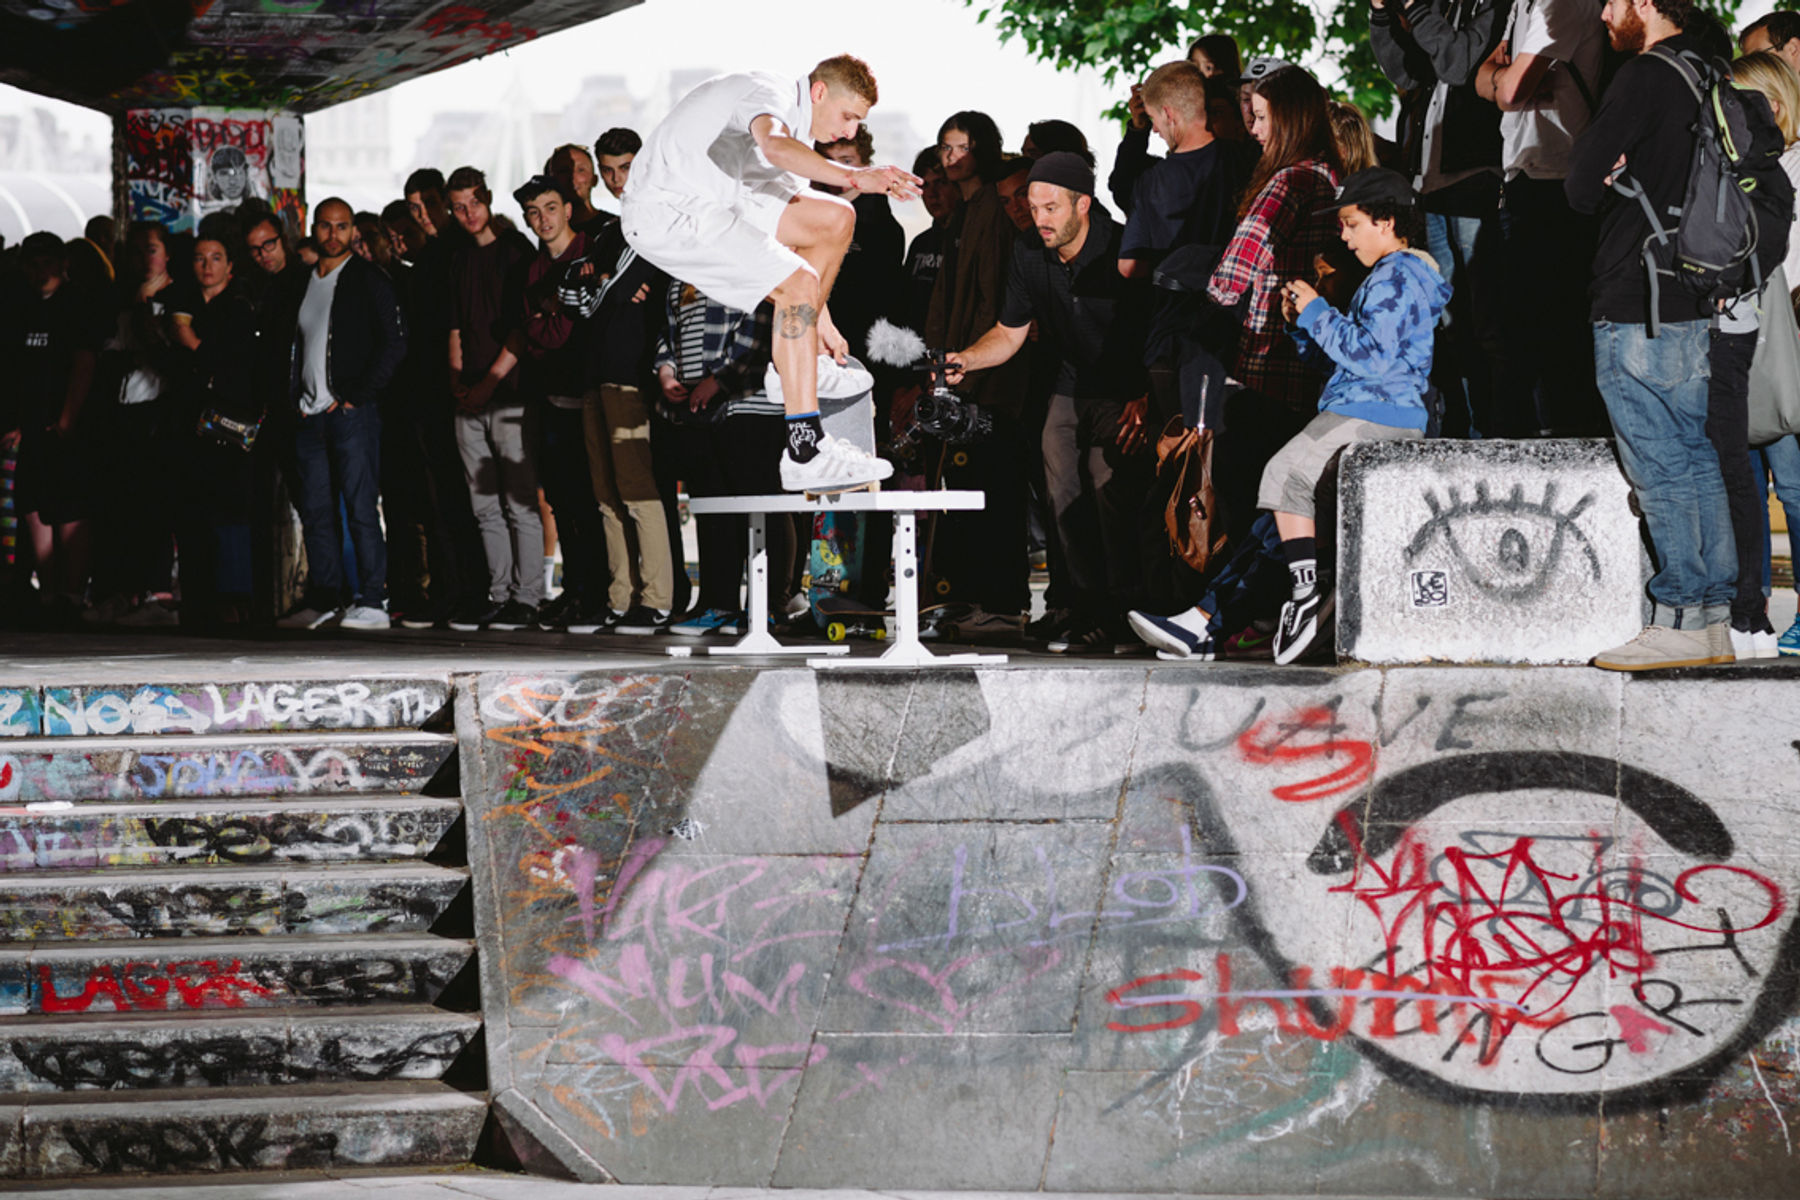 _IHC6878e-Blondey-McCoy-Fs-Nosegrind-Tailgrab-Into-Bank-Adidas-SB-Southbank-Demo-London-June-2015-Photographer-Maksim-Kalanep_NEW